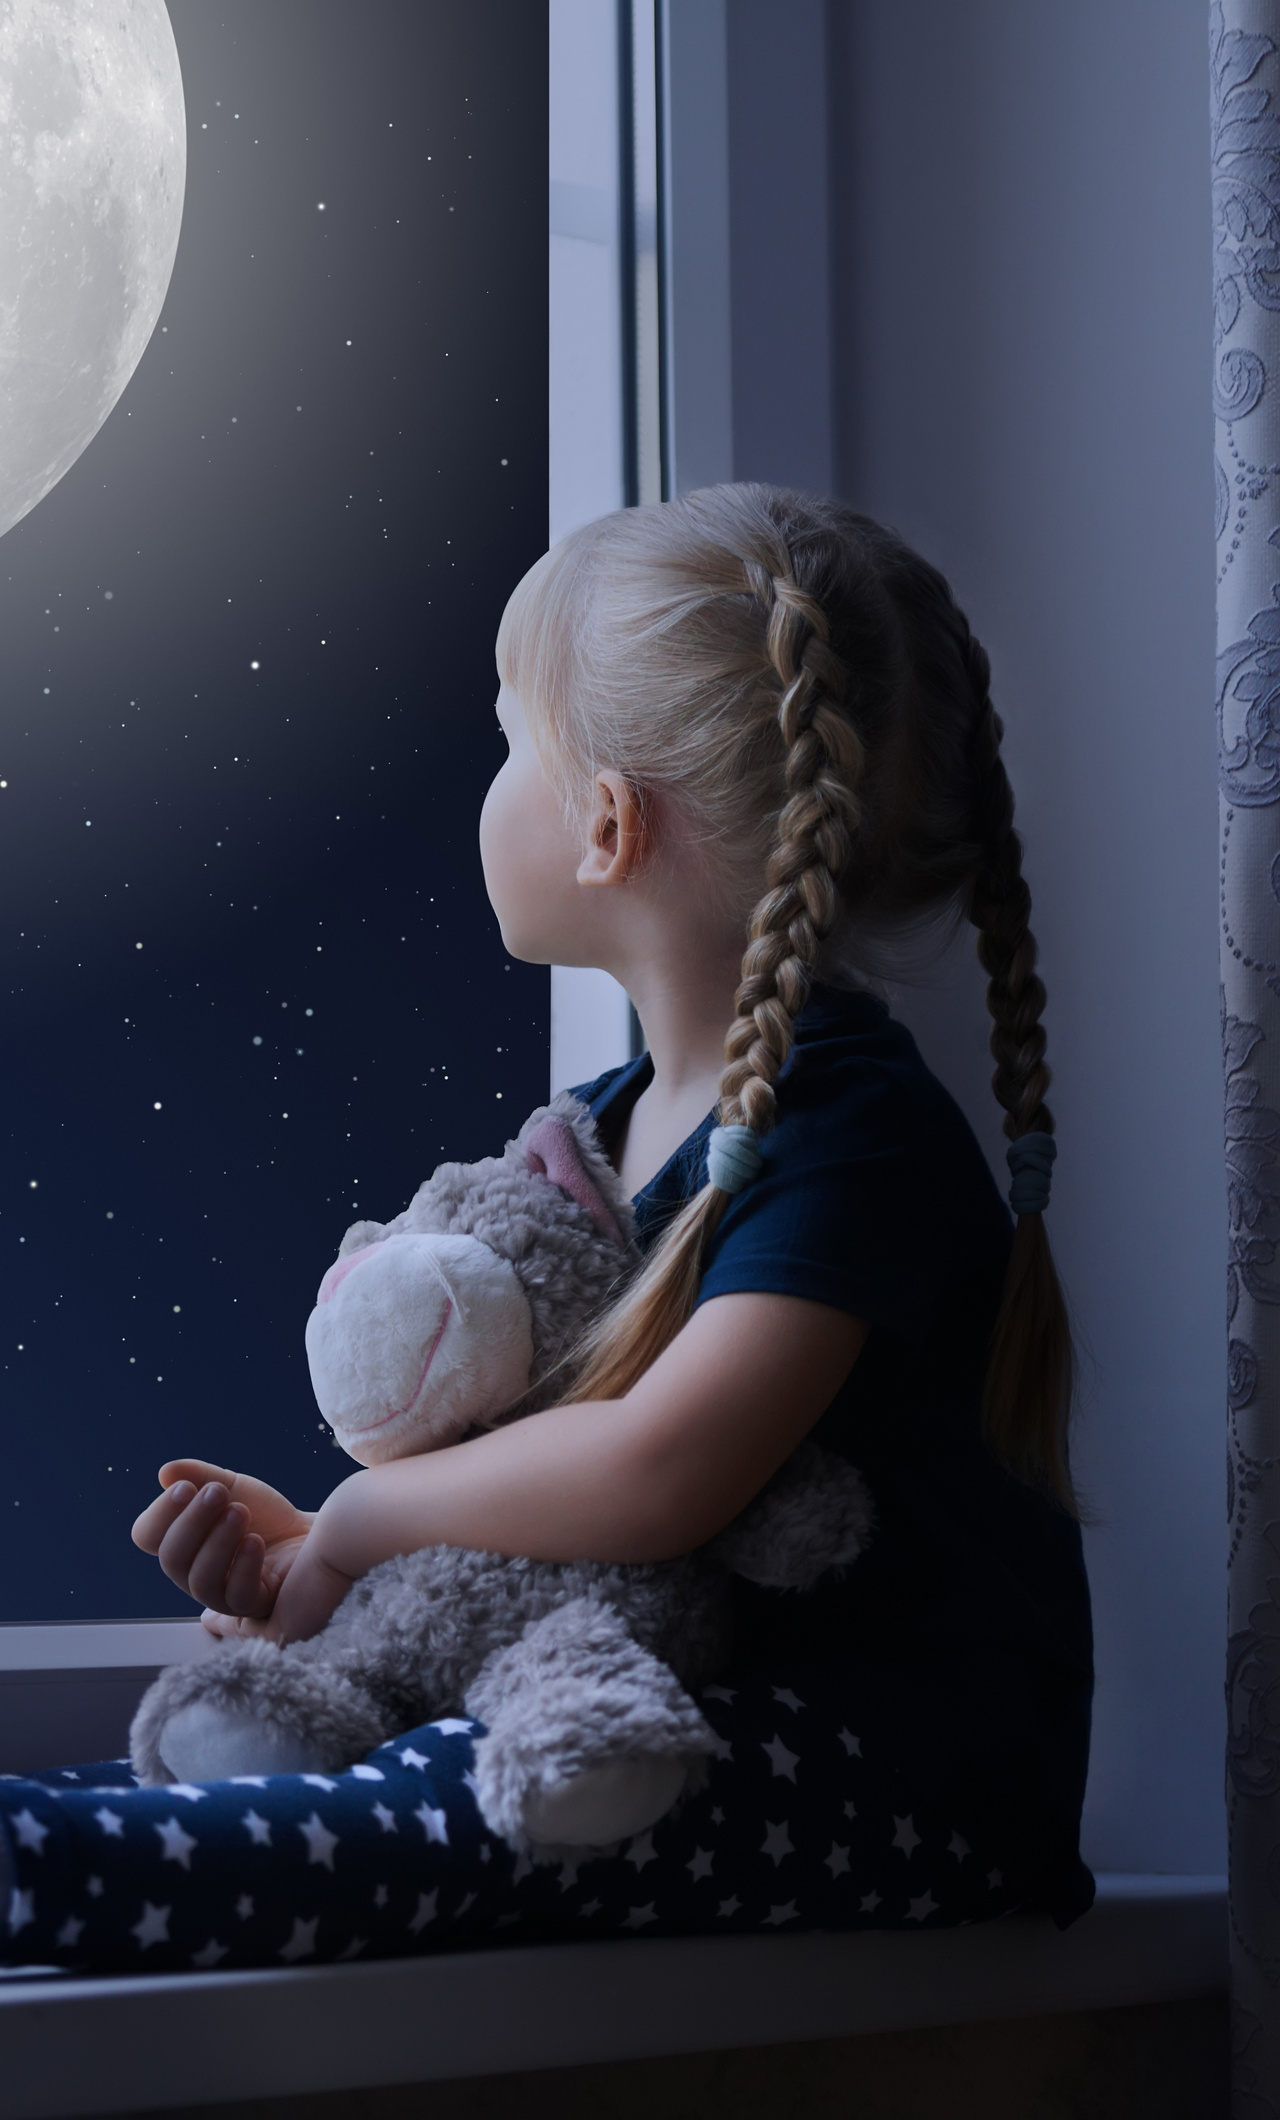 Little Girl Wallpaper 800x1280 1280x2120 Little Girl Sadly Out Of A Window With A Teddy